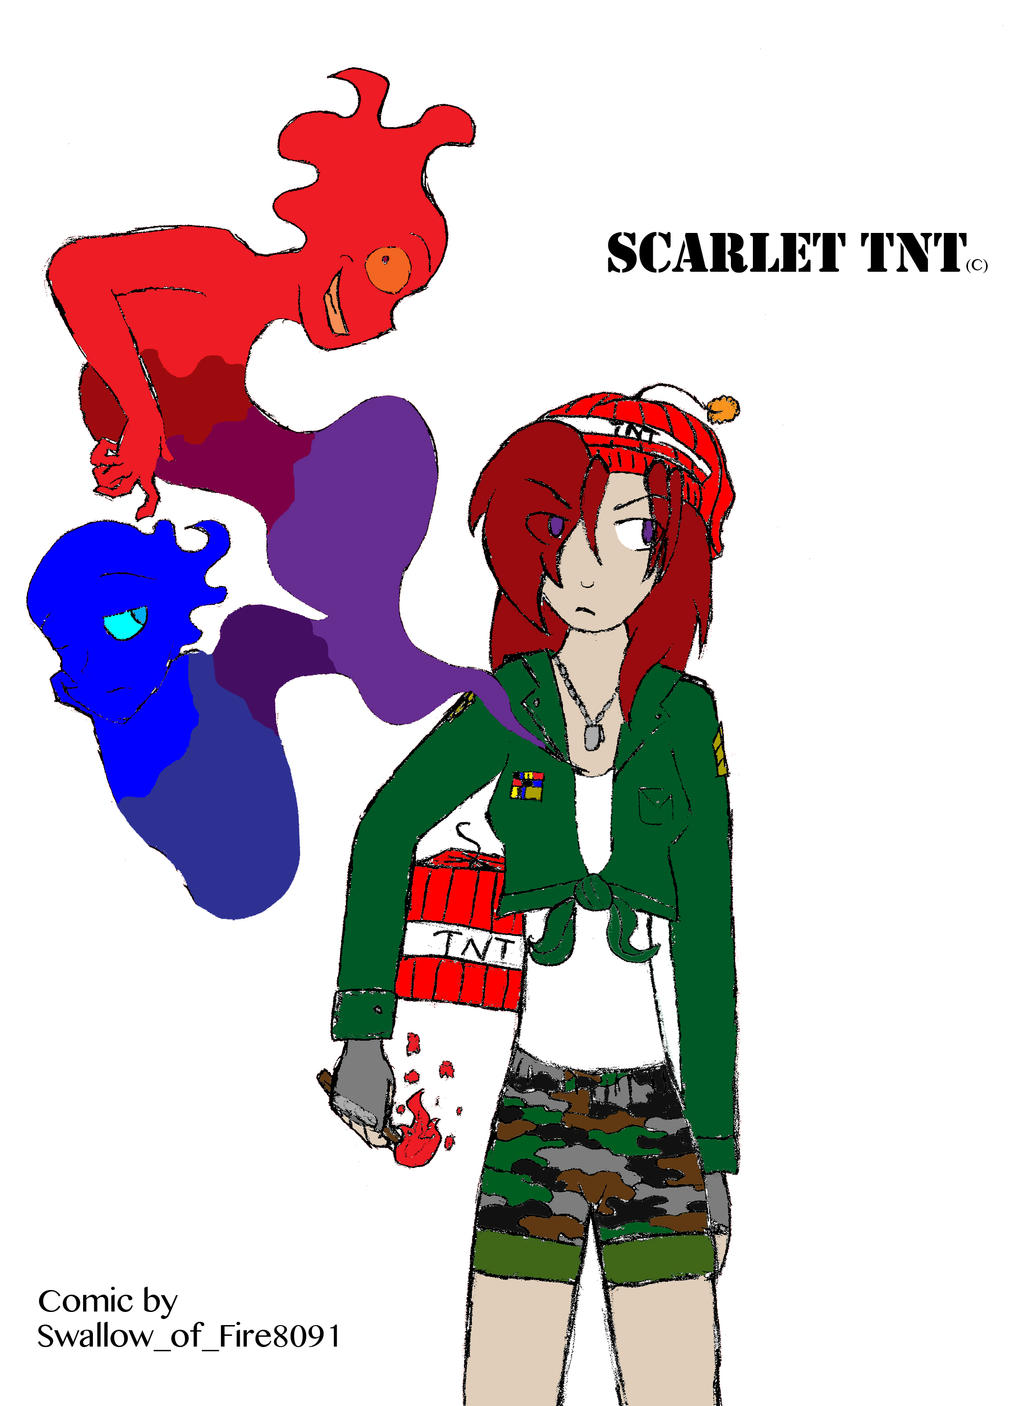 Scarlet TNT Comic Title (Old title of BTC Comic) by Swallow-of-Fire8091